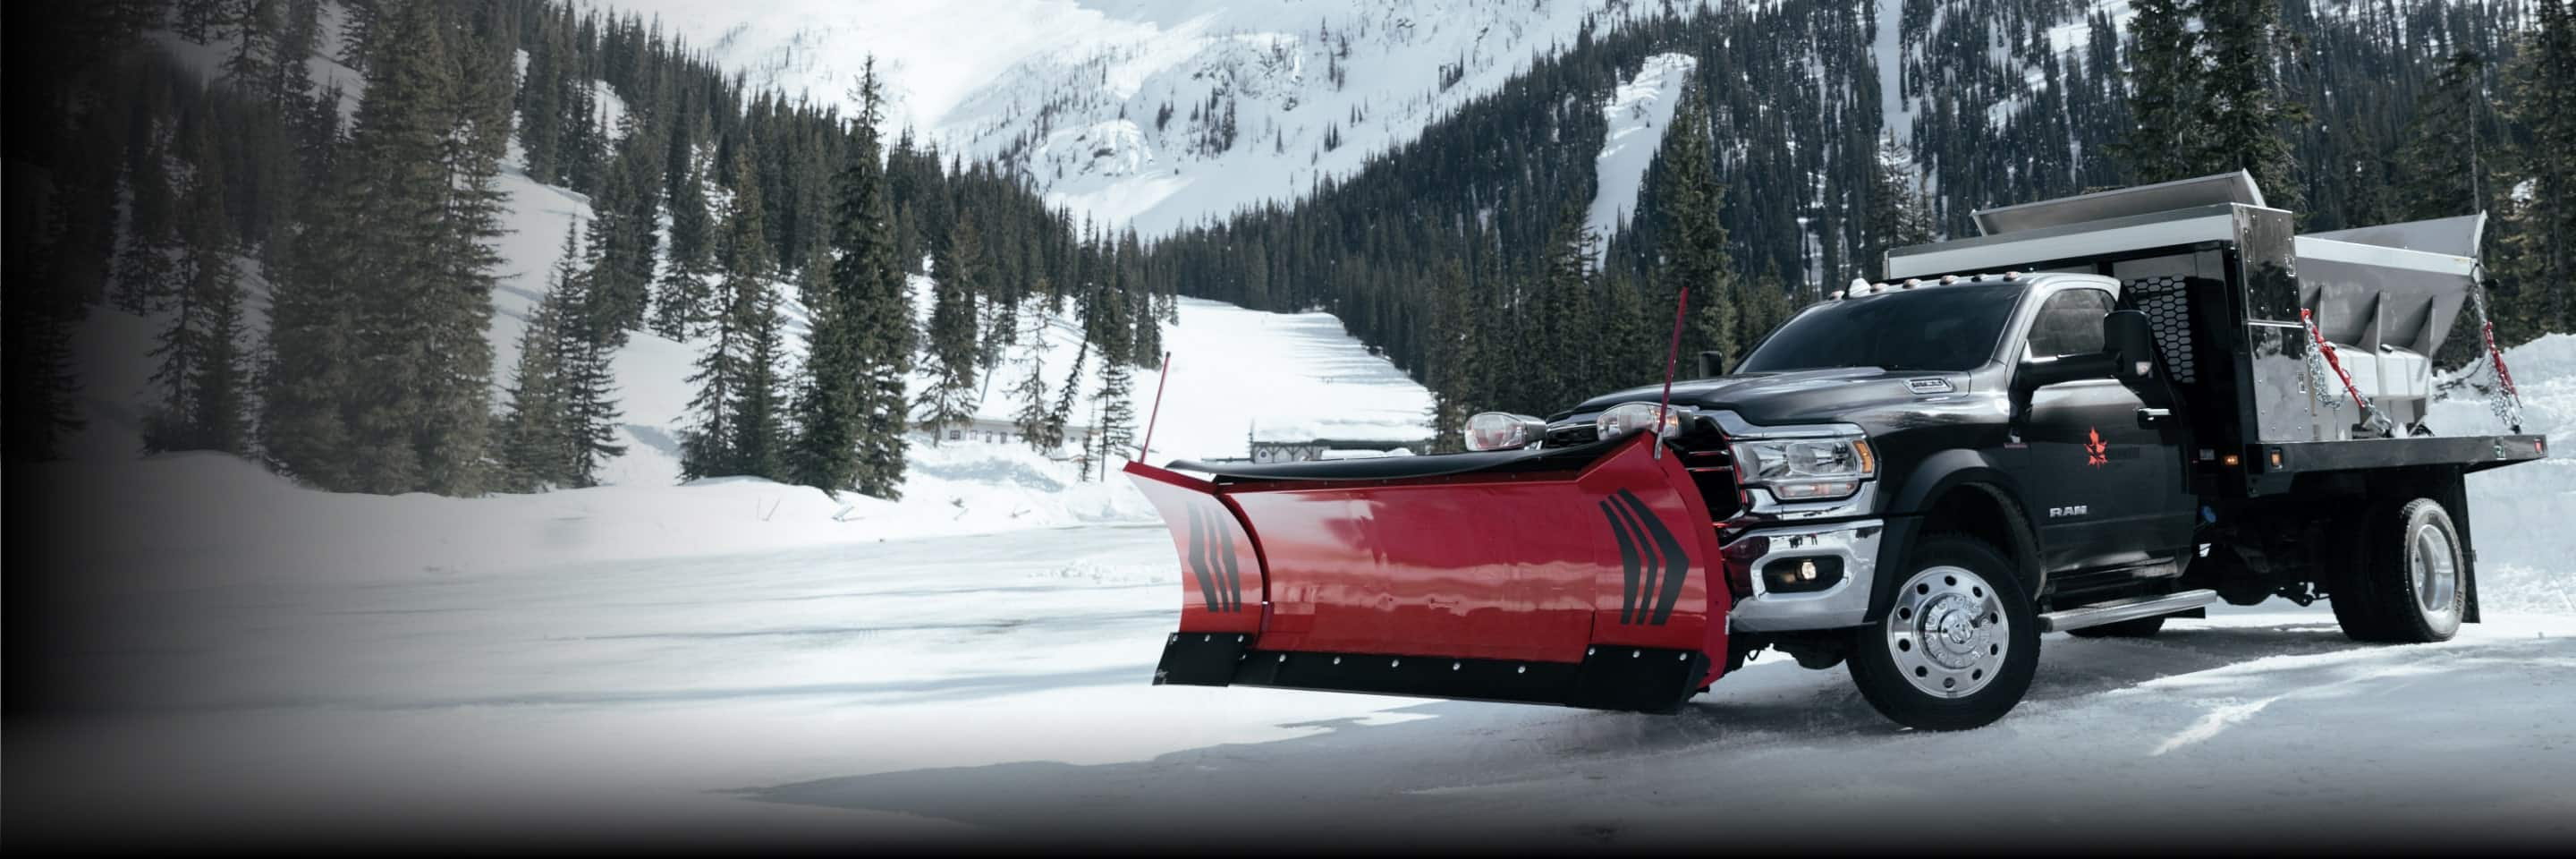 The 2021 Ram 5500 Chassis Cab with a snowplow upfit being driven on a mountain road.